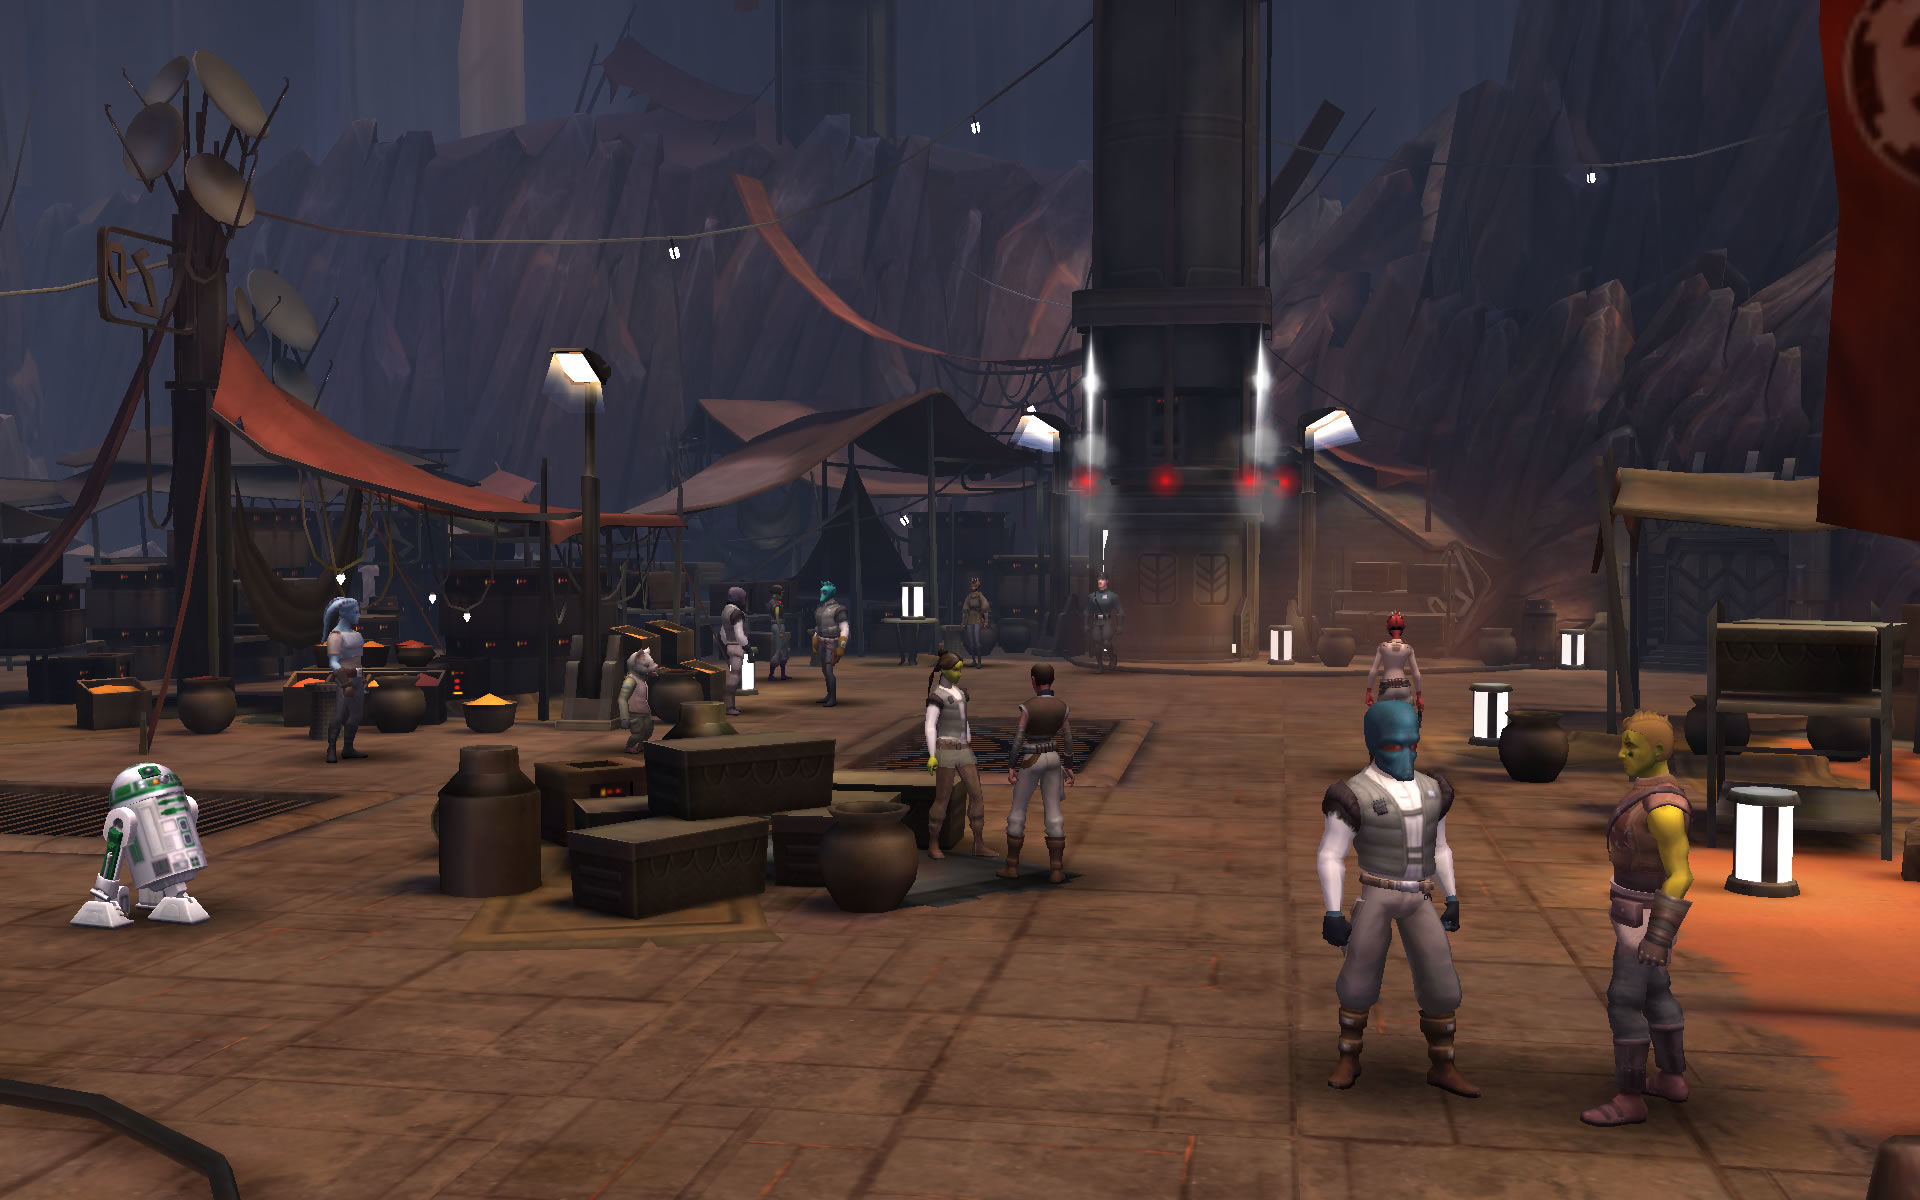 Star Wars: Uprising Android A busy market in the introduction sequence